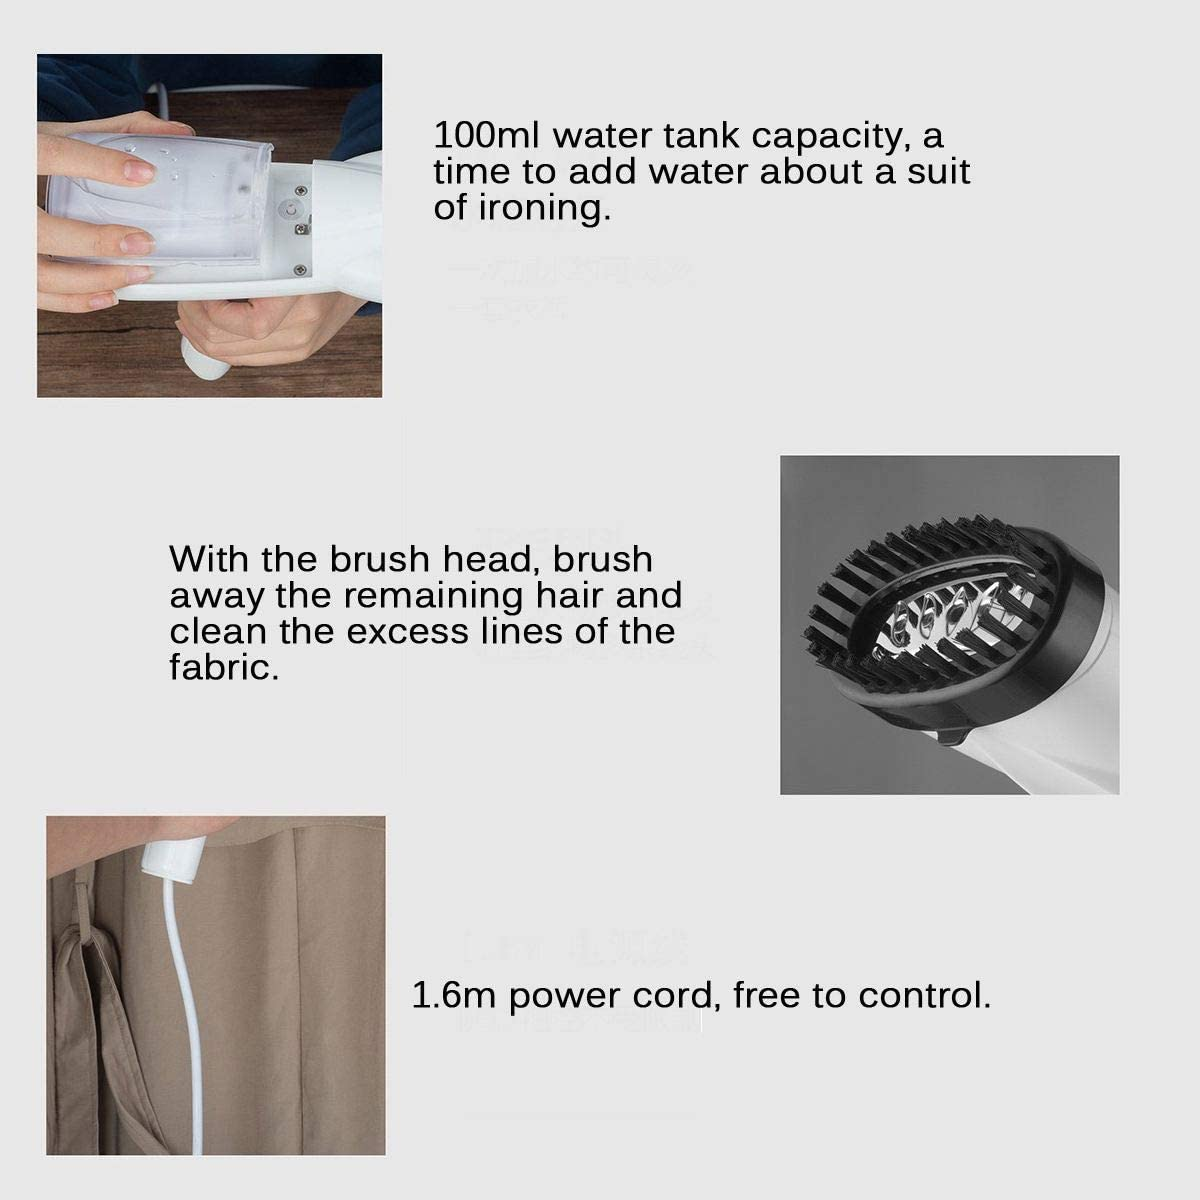 20s Fast Heat-up Auto-Off Suit for Any Fabrics Belita Amy Foldable Garment Steamer for Clothes Portable Handheld Iron Garment Fabric Wrinkle Remover with Detachable Water Tank for Home and Travel